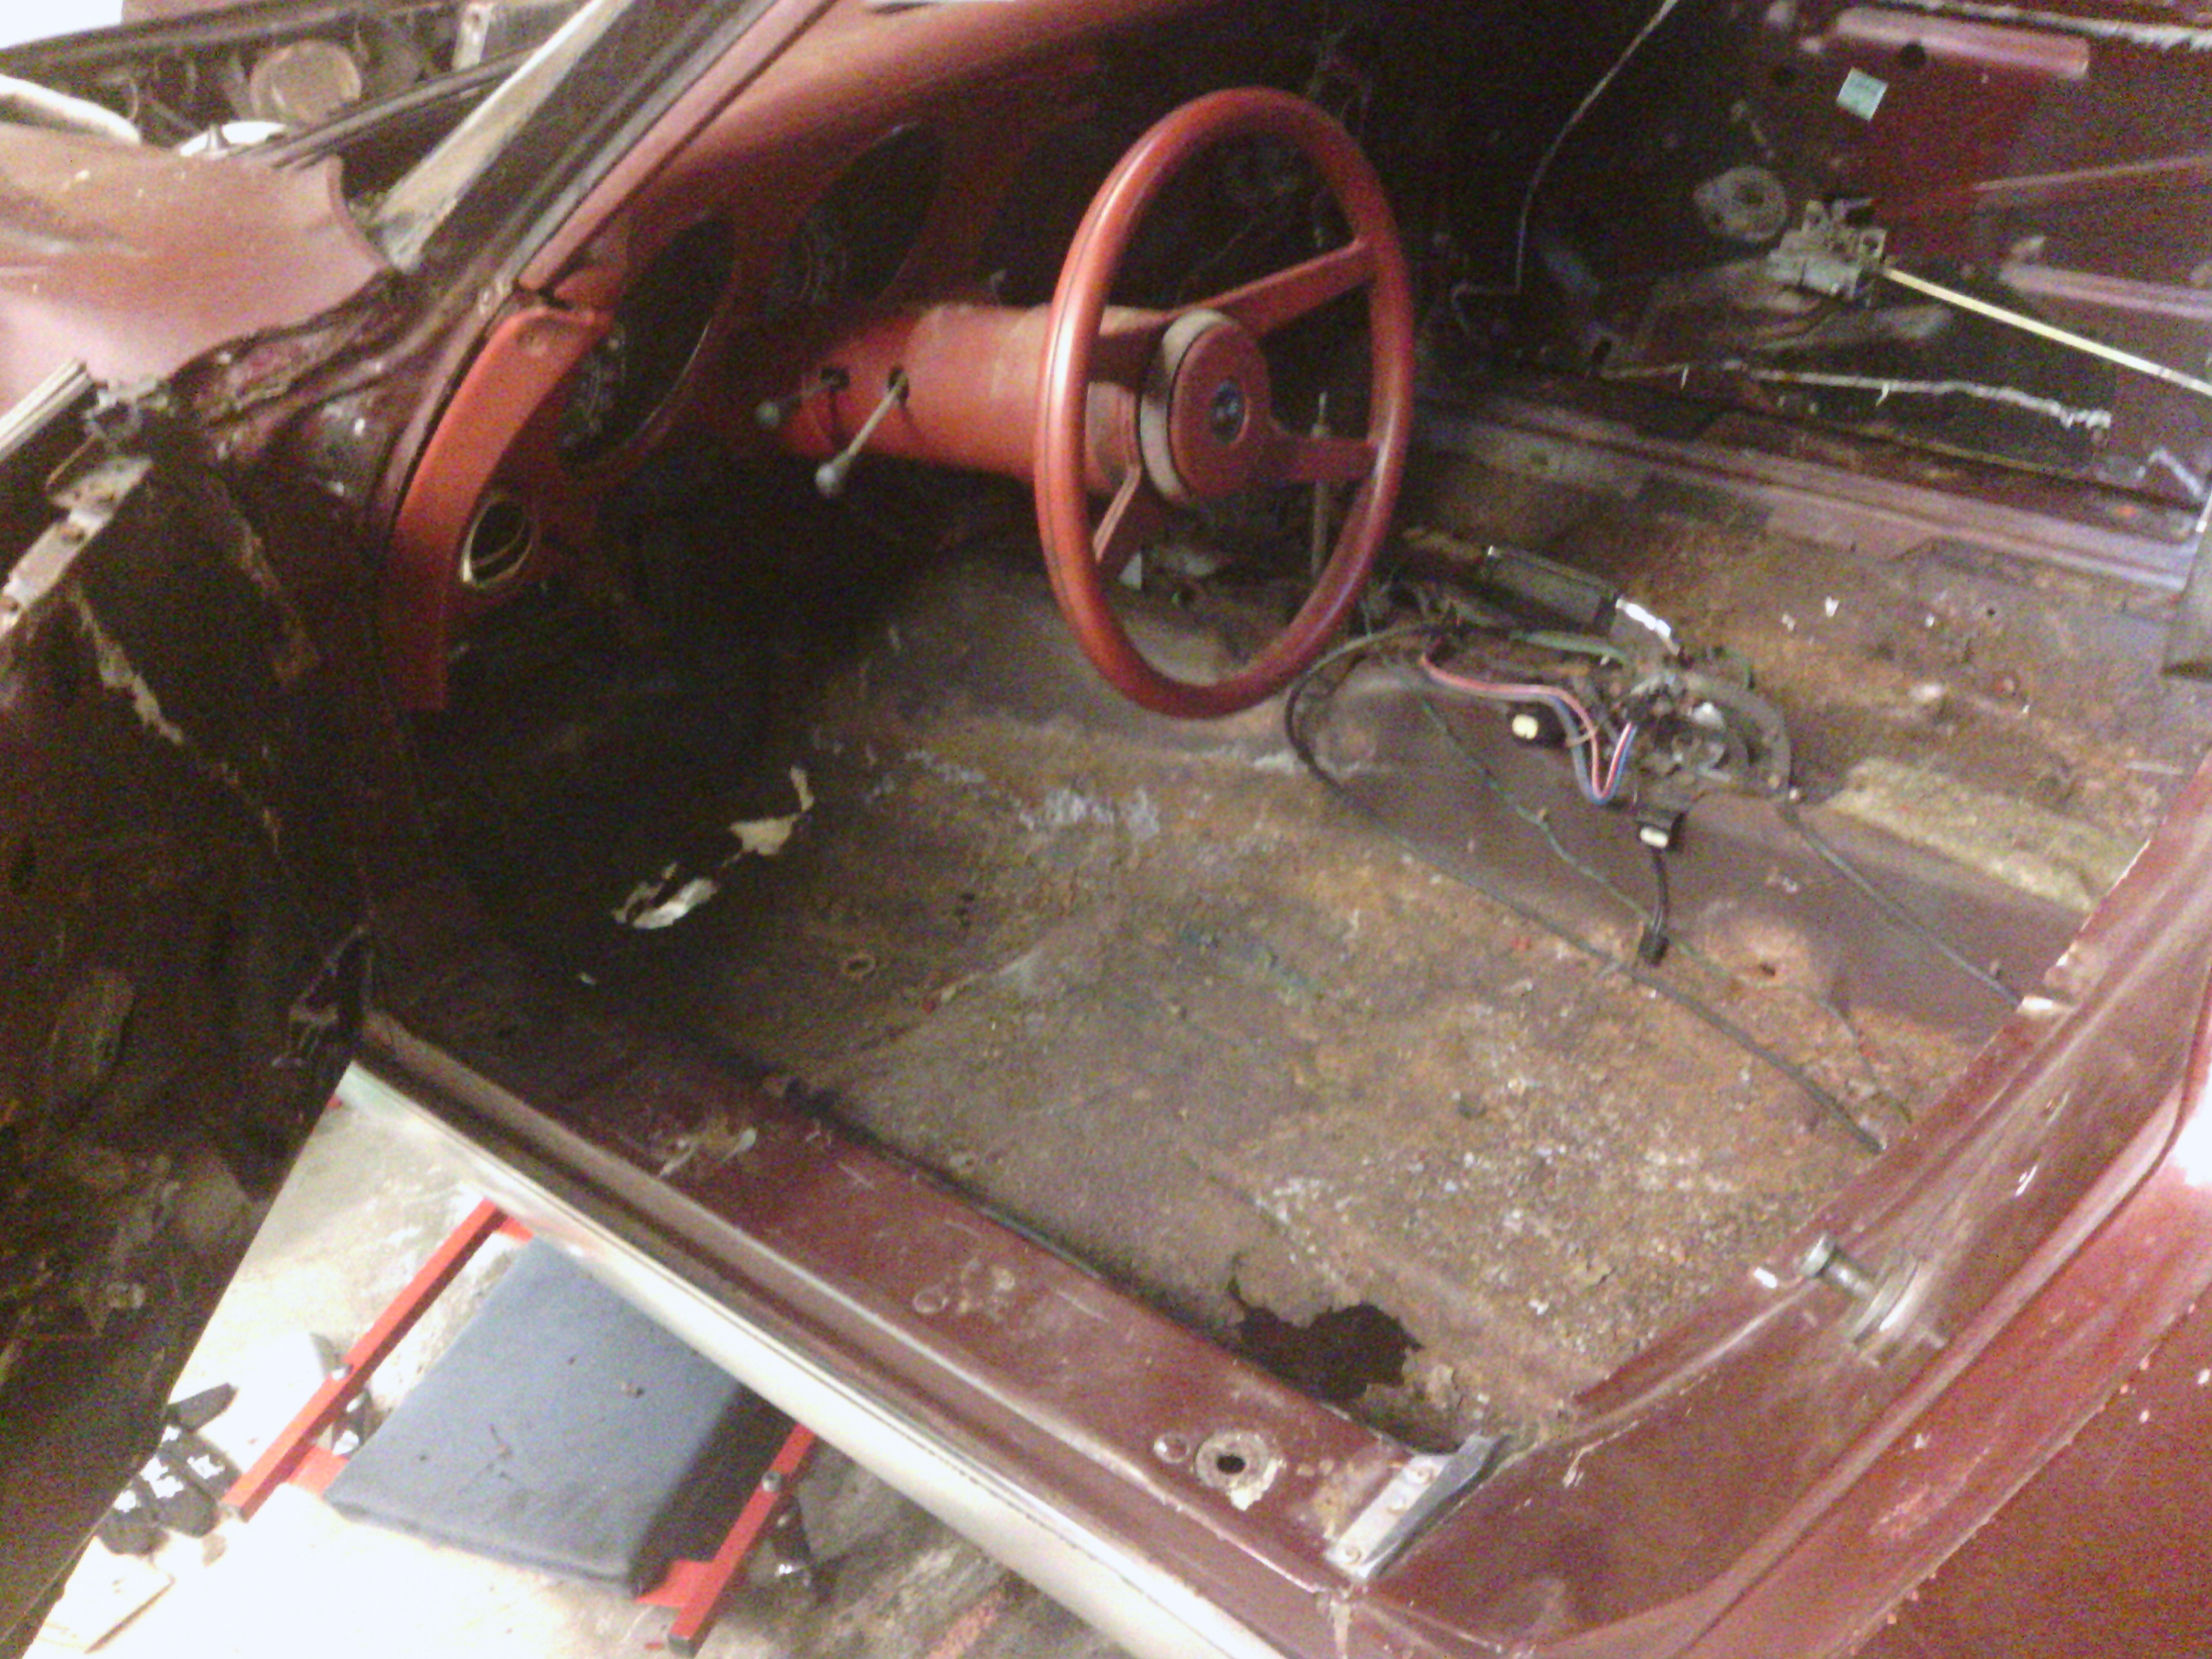 Only the instrument cluster, upper dash pad, A-pillars, and upper windshield trim remain.  Unfortunately many of the screws in the upper windshield trim and A-pillars are rusted solid and will need to be drilled out.